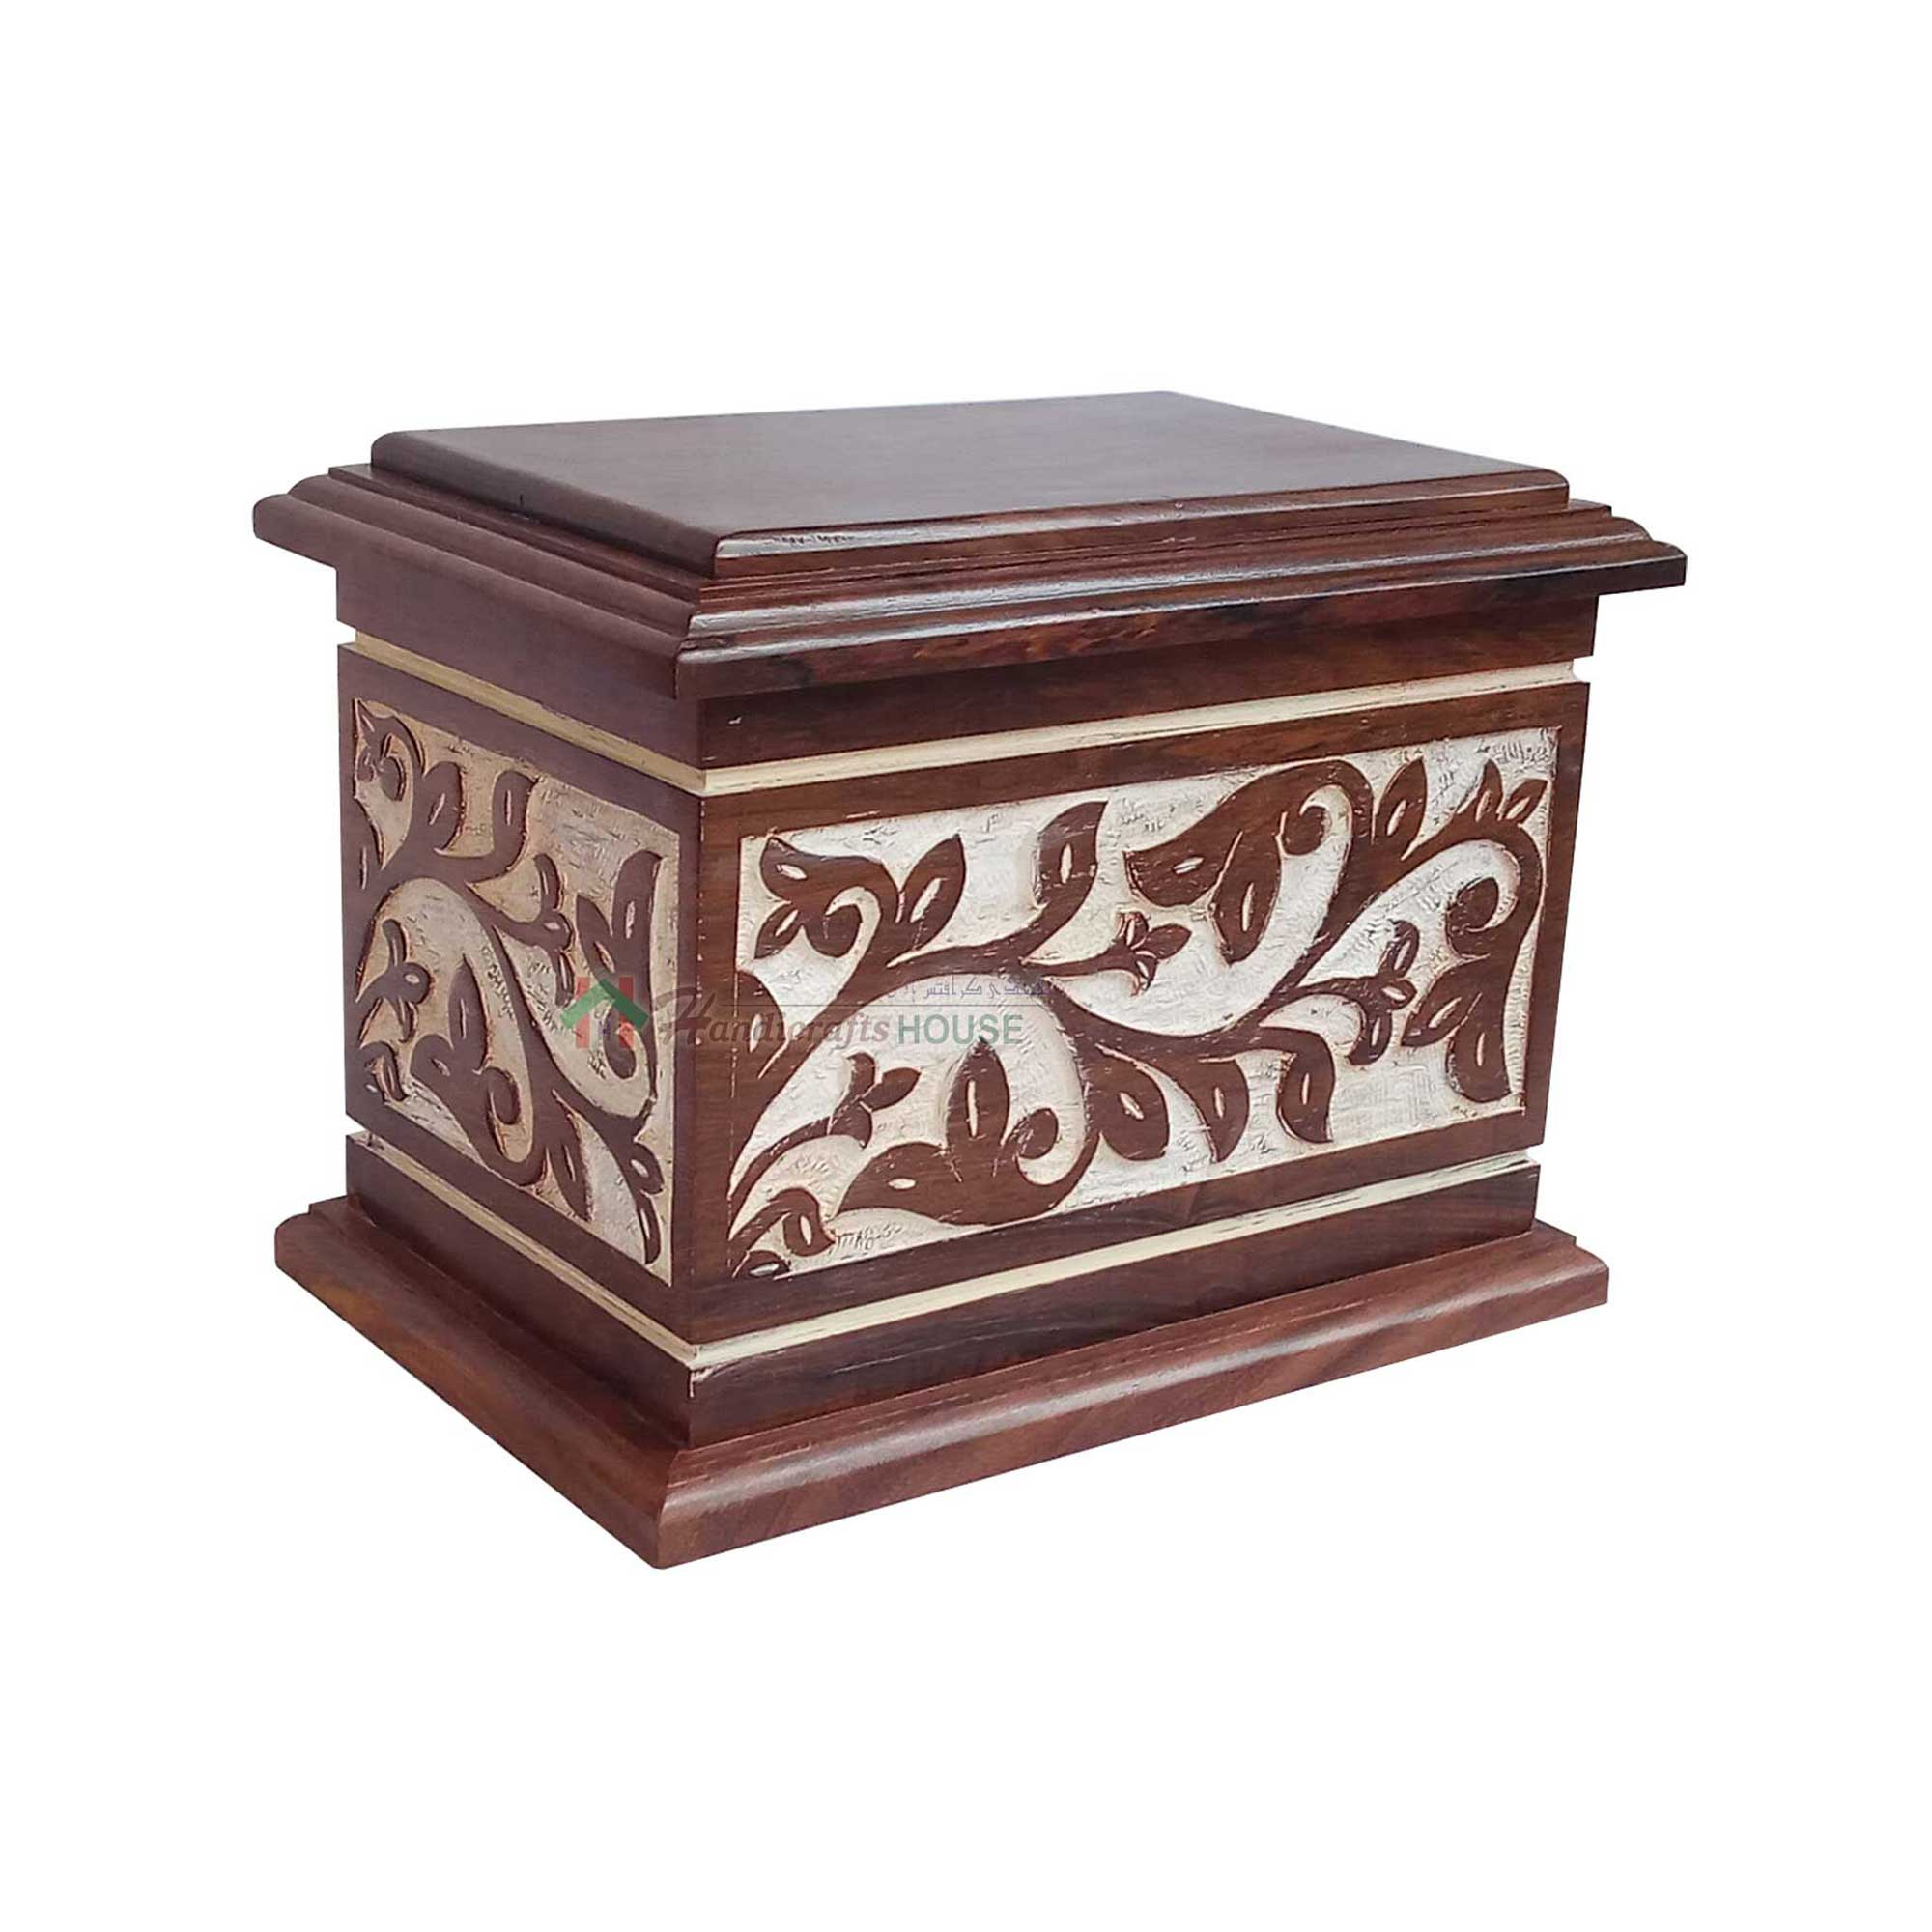 Burial Urns, Cremation Wooden Urns for Remain Ashes, Wood urn